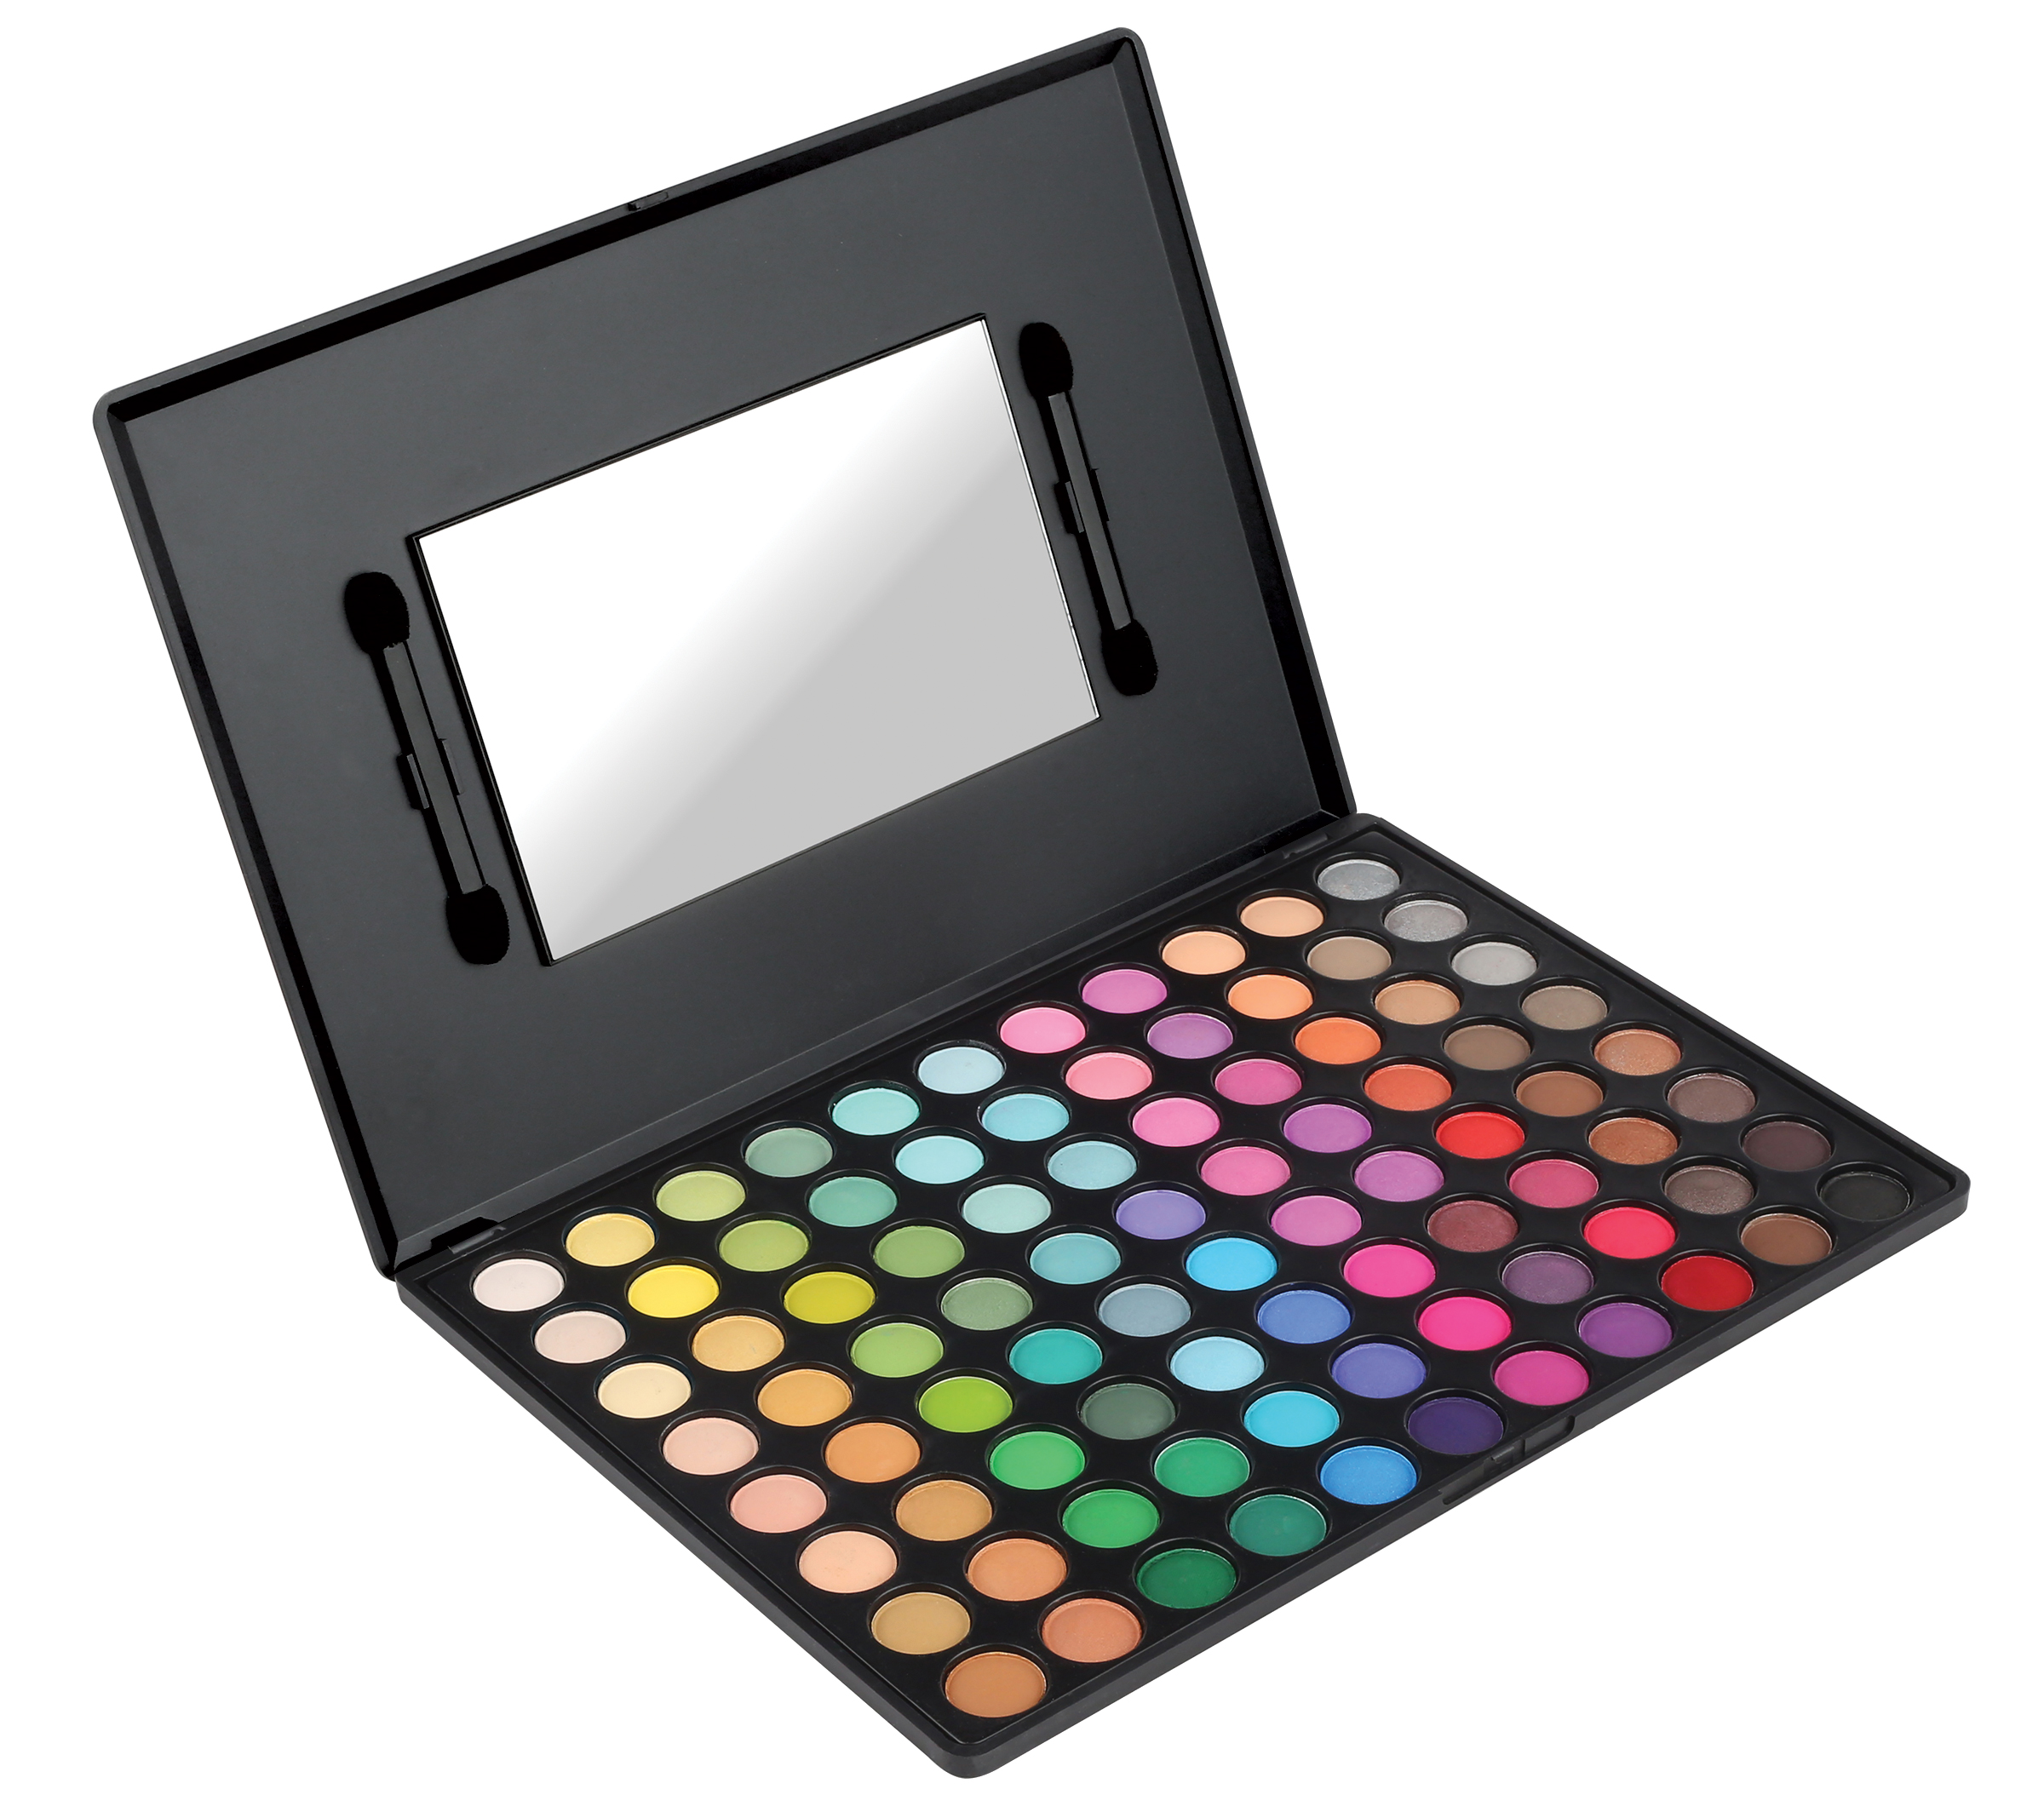 Coastal Scents 88 Piece Color Makeup Palette